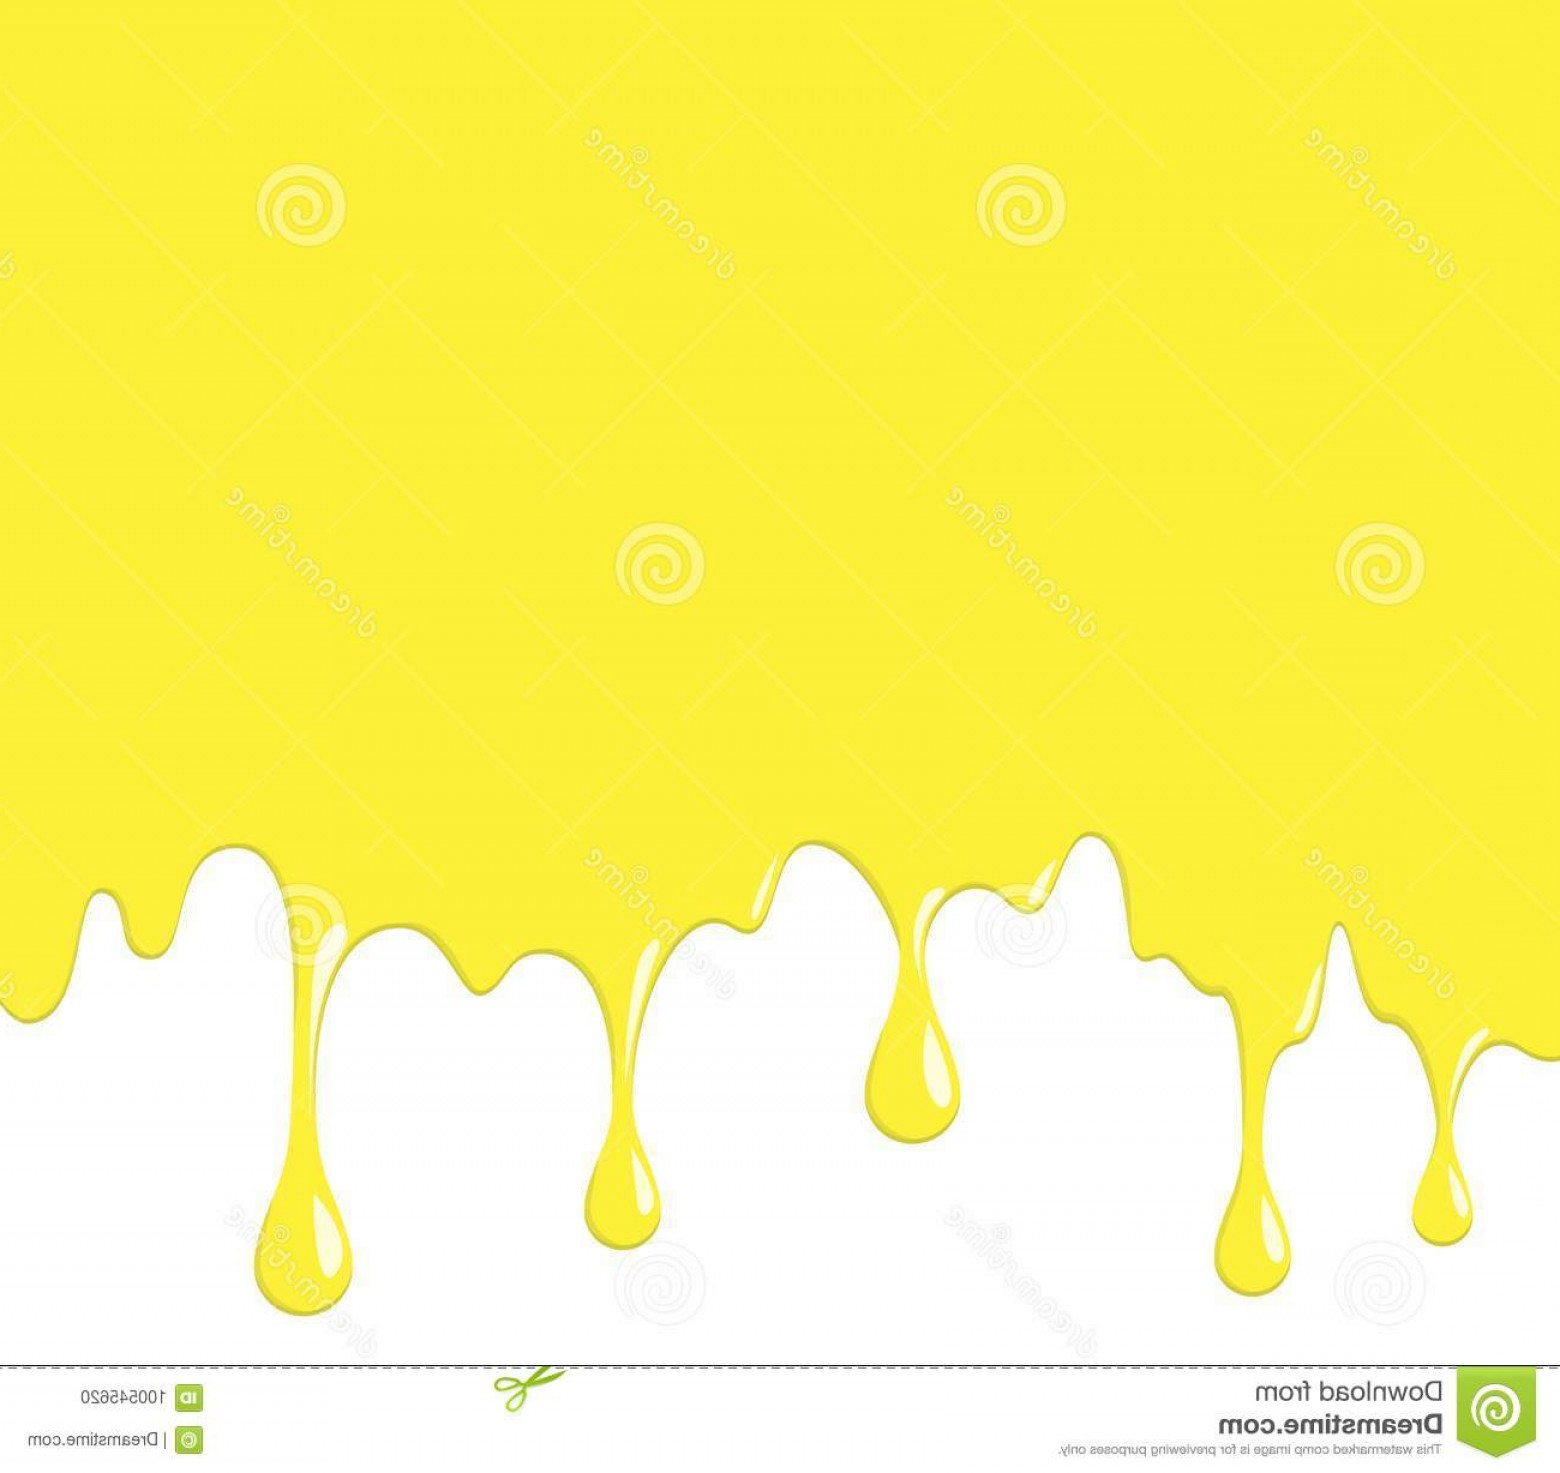 Dripping Paint Vector Illustration: Yellow Cheese Dripping Paint Vector Illustration Molten Driping Image